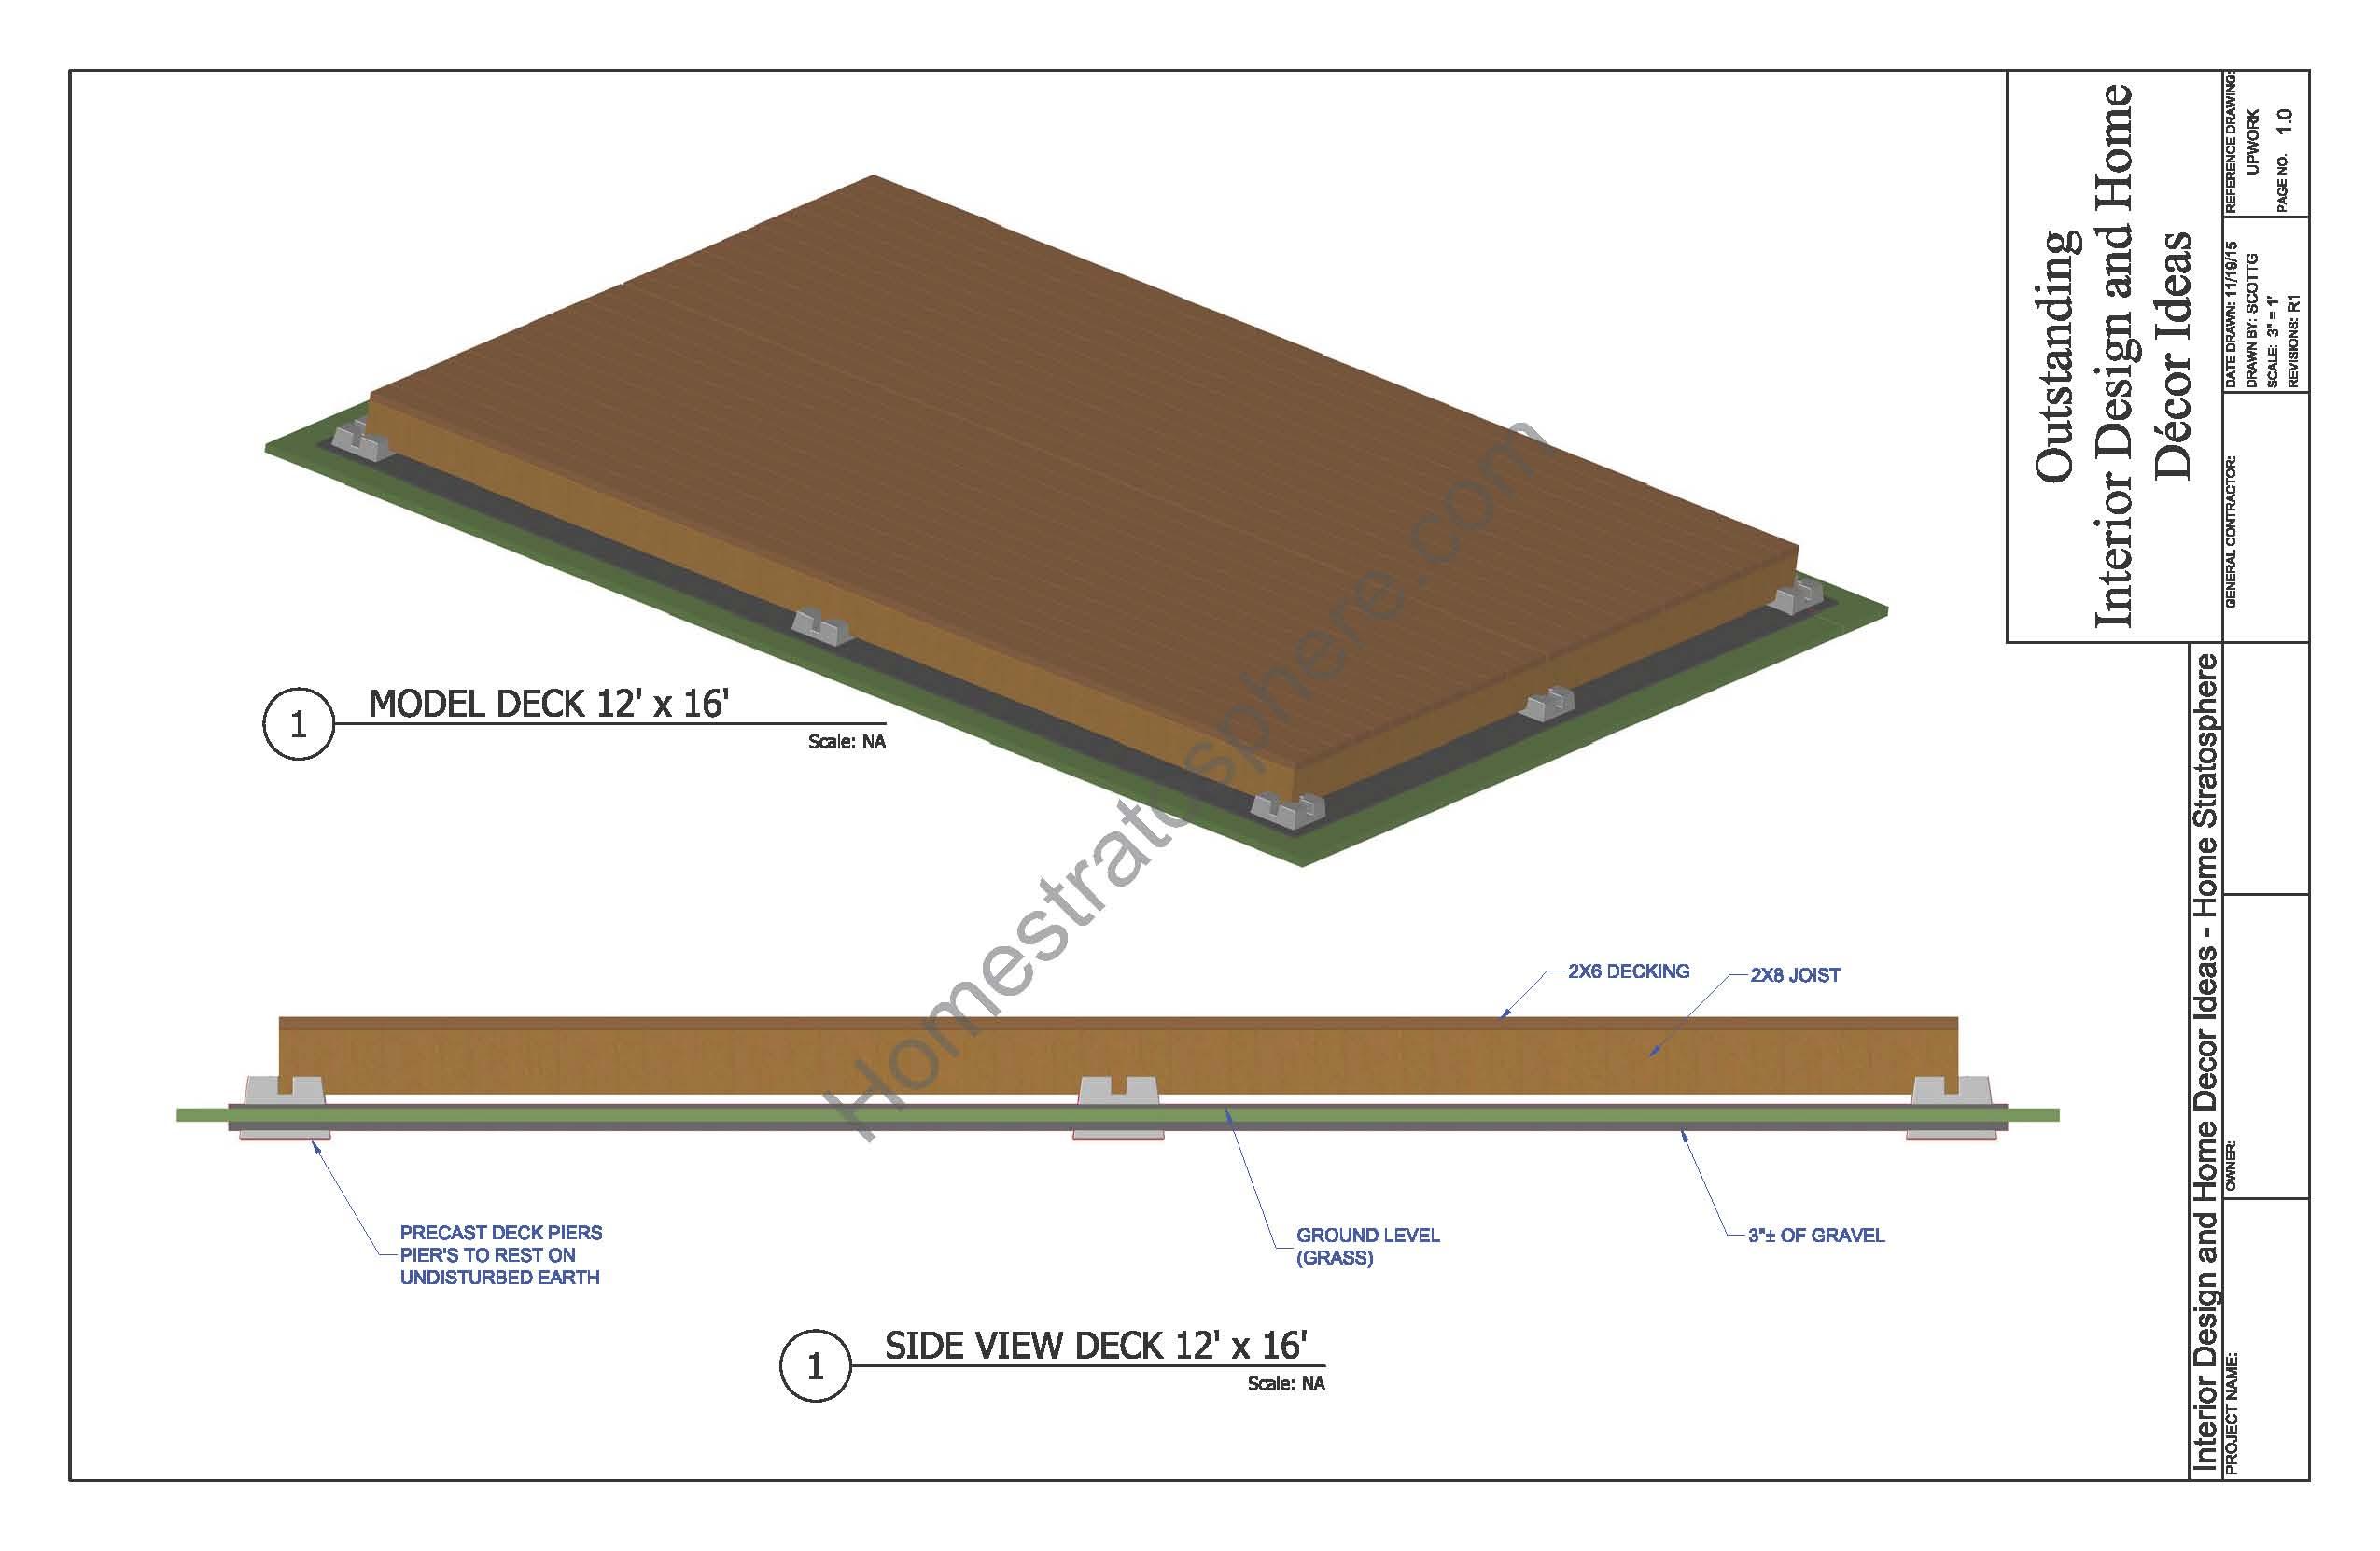 12 X 16 Ground Level Deck (Like a Wooden Patio)